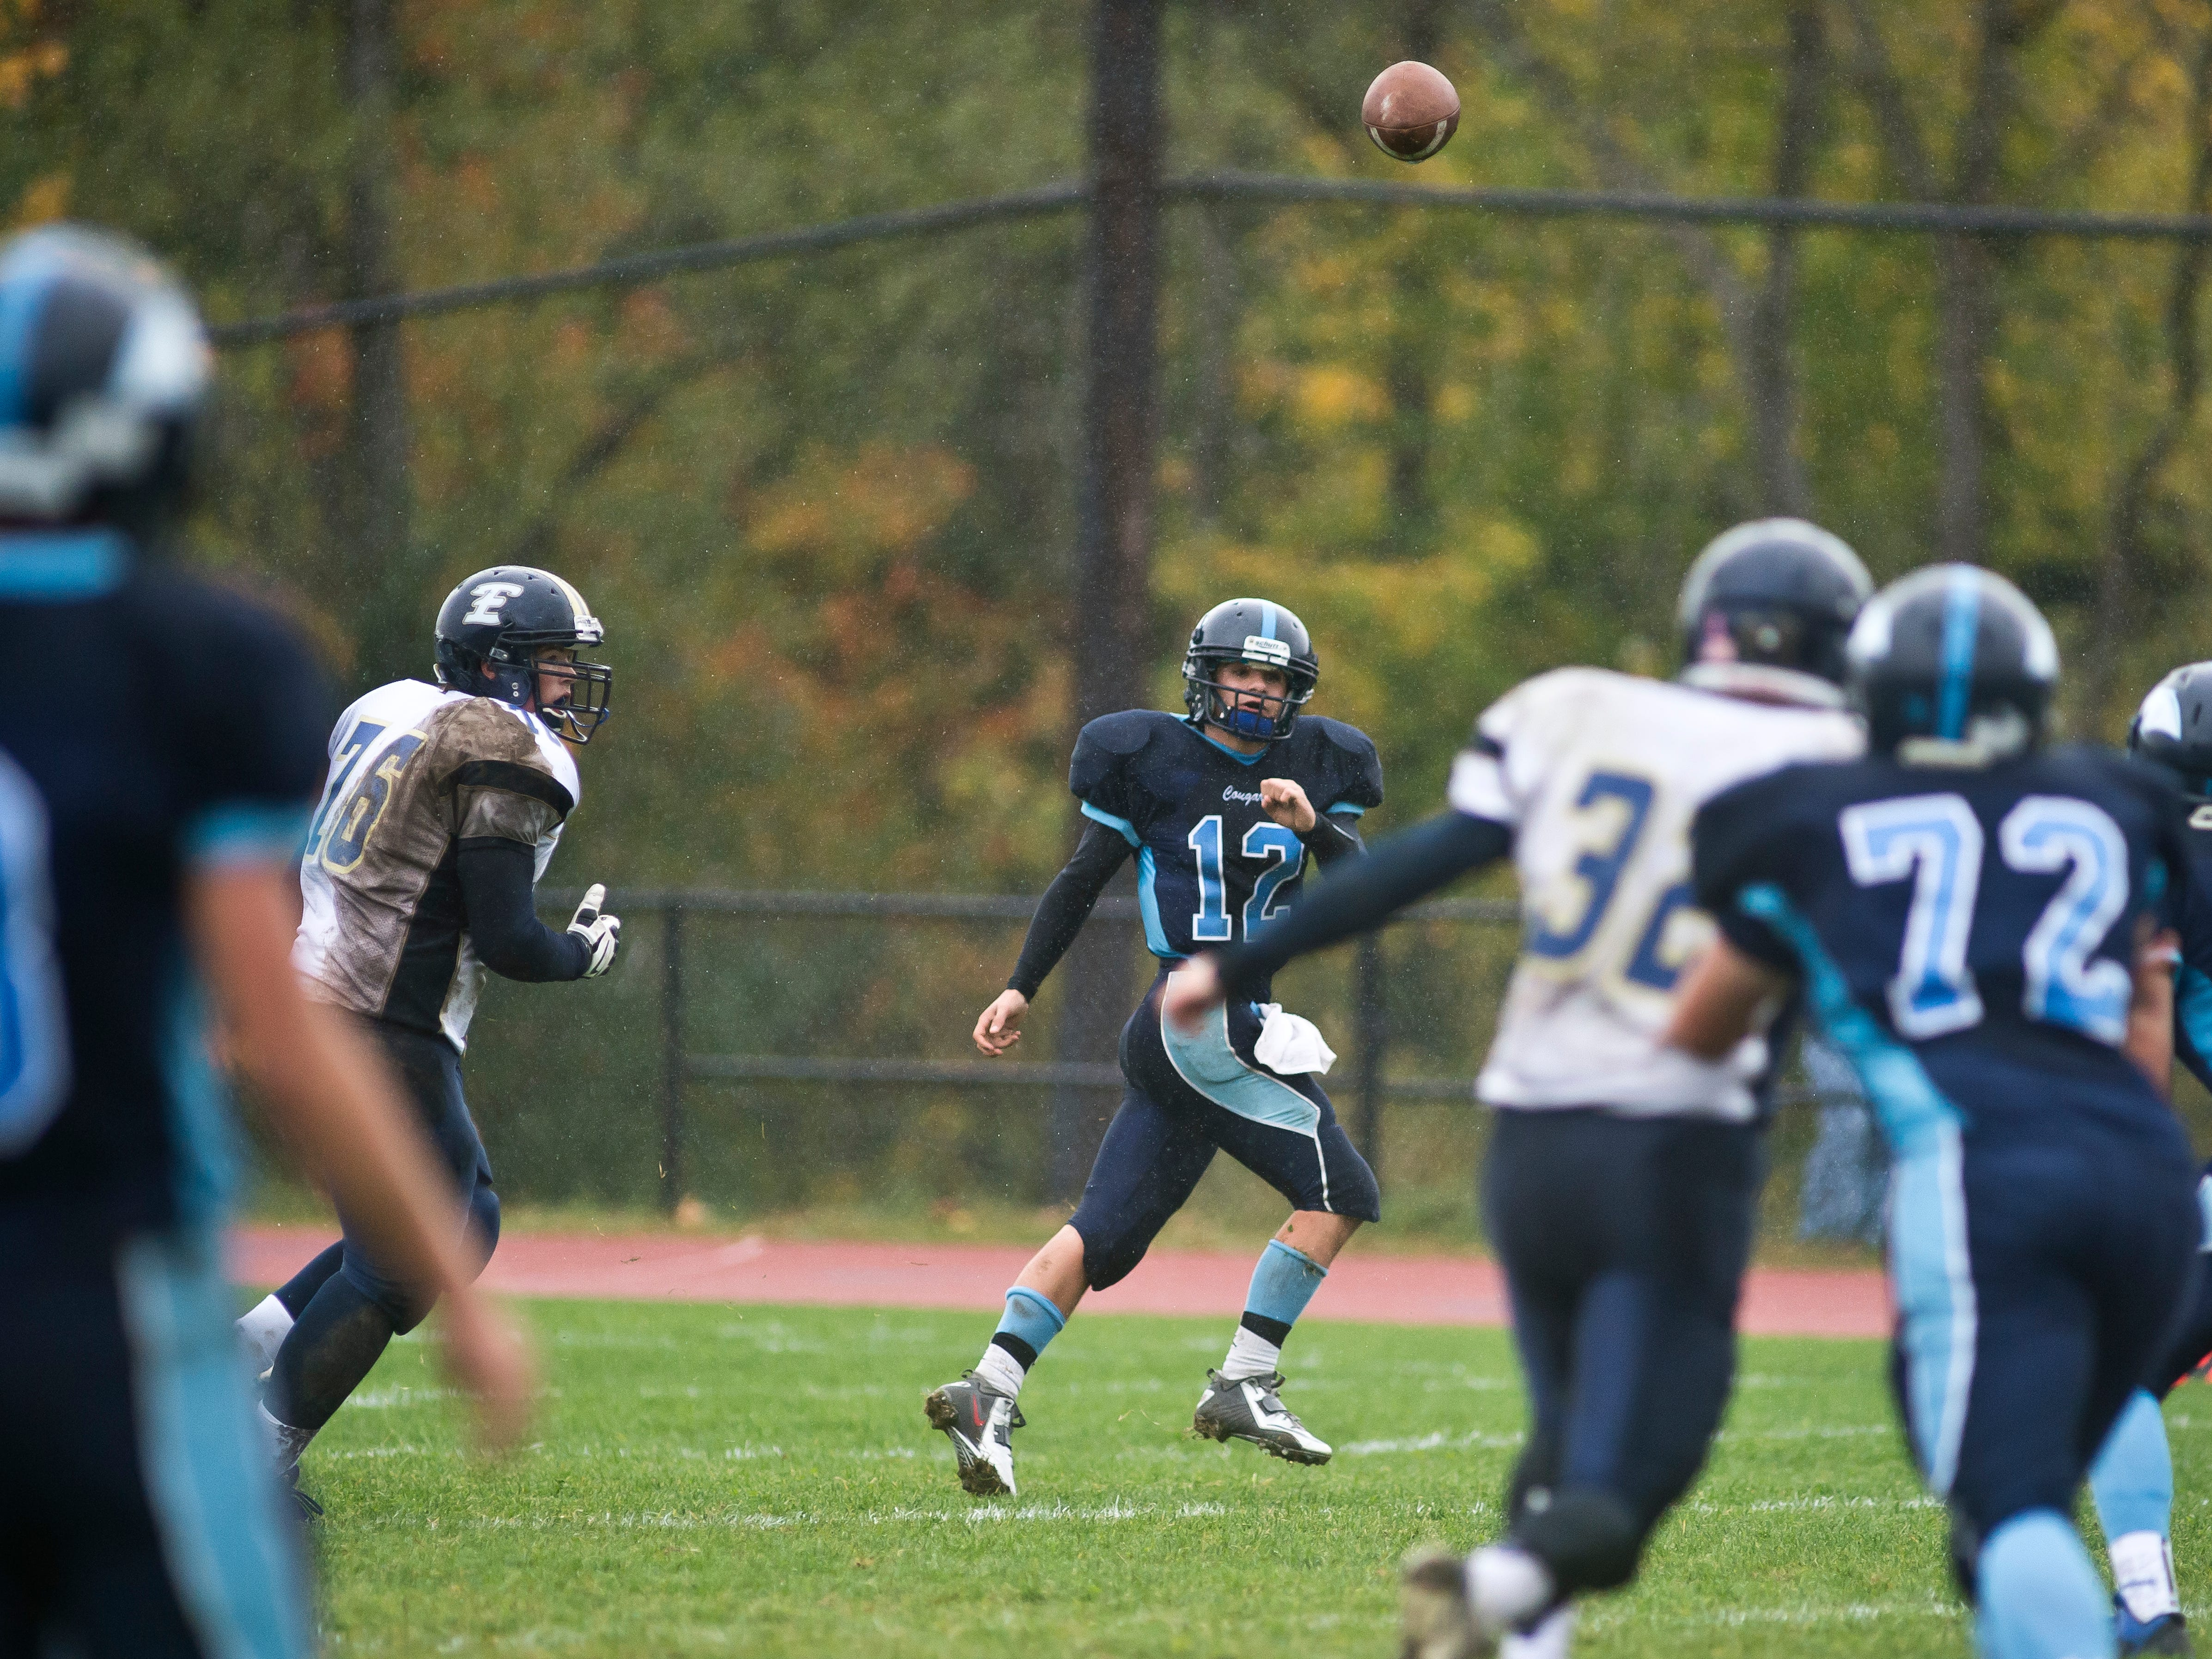 MMU's #12 Dominic Mosca lets the ball fly after being chased down by Essex defenders during their match up in Jericho Saturday.